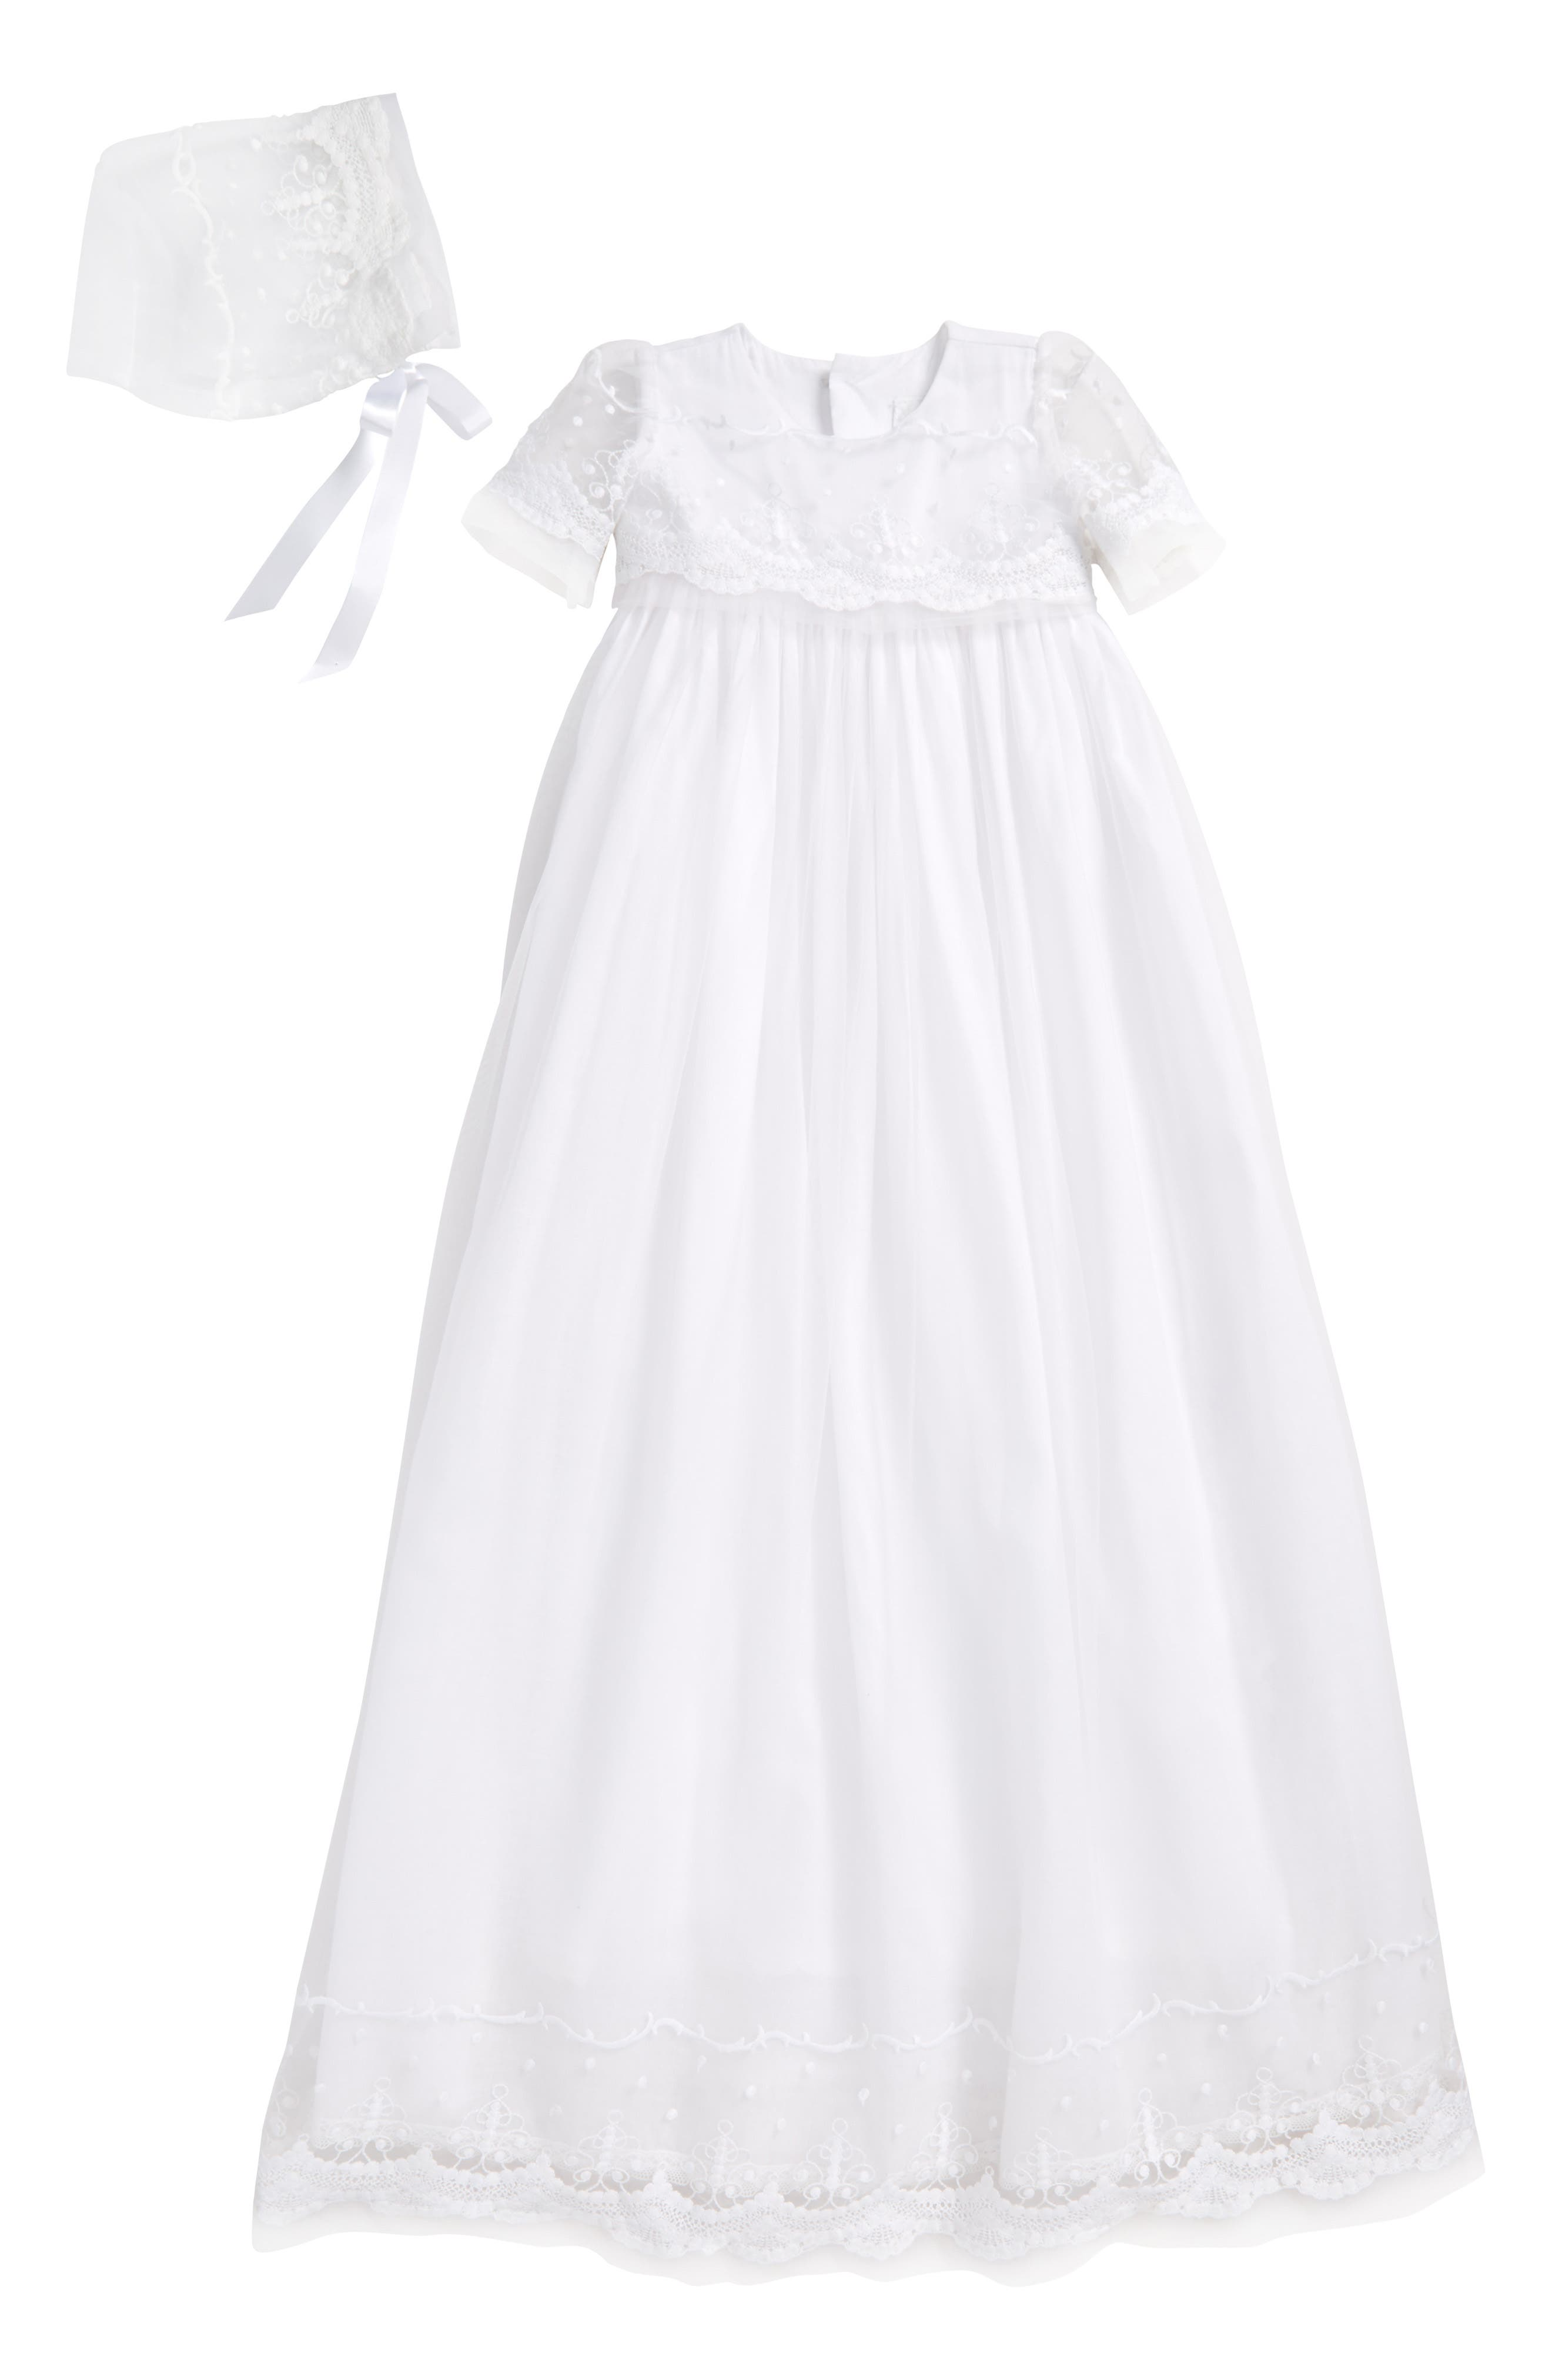 Blessing Christening Gown & Bonnet Set,                             Main thumbnail 1, color,                             WHITE